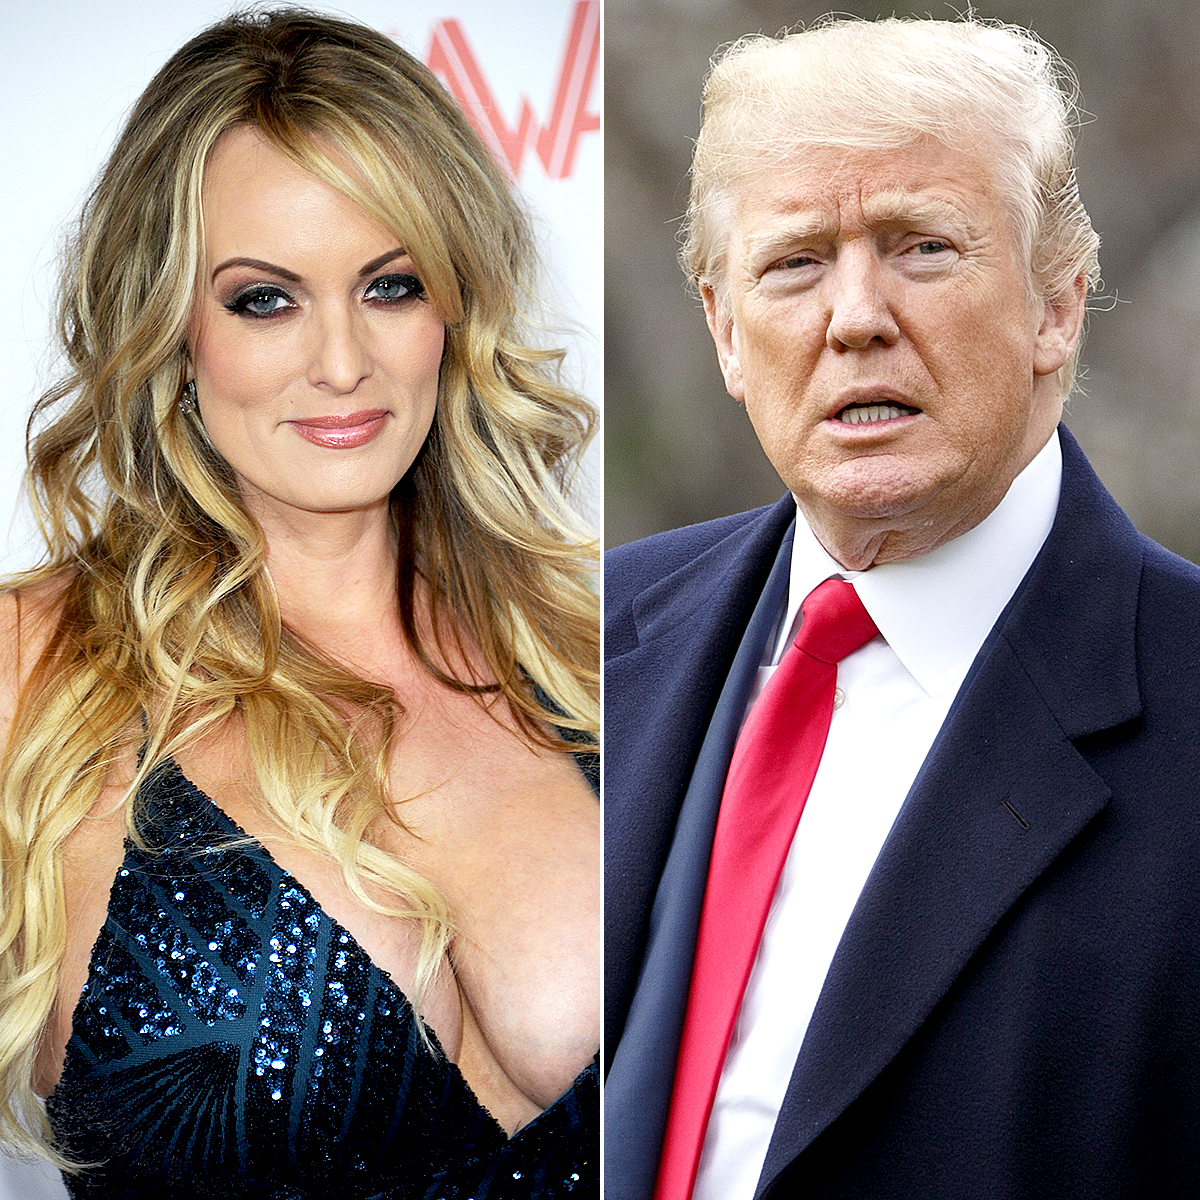 Stormy Daniels Takes to CrowdJustice to Finance Legal Battle with Trump